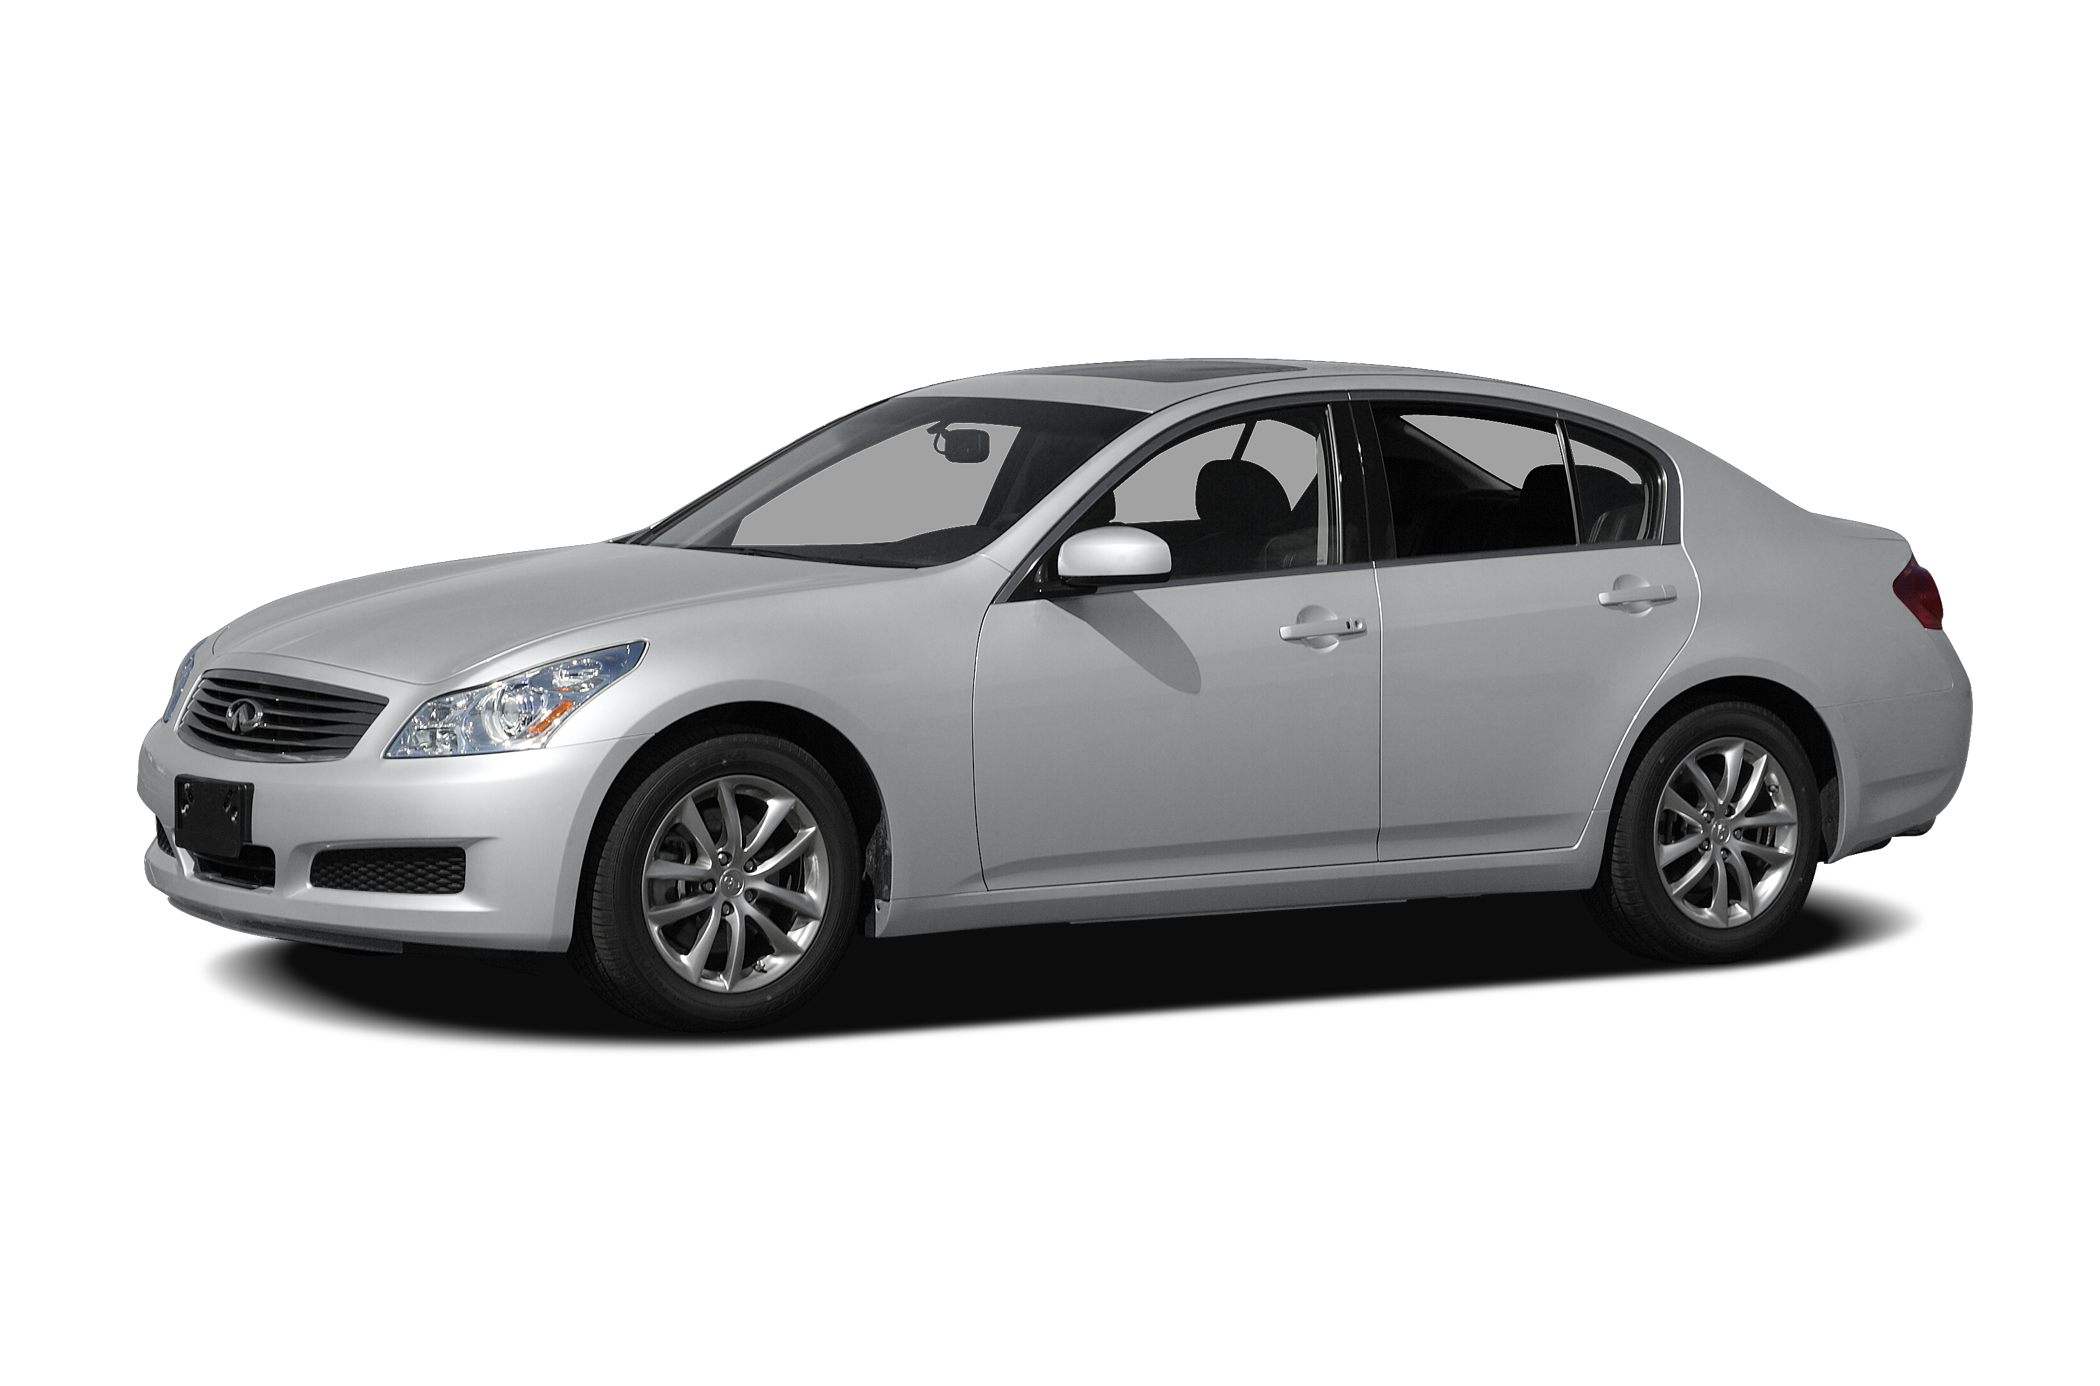 2008 Infiniti G35 Base Certified by CARFAX - ONE OWNER And GPS NAVIGATION ABS brakes Elect